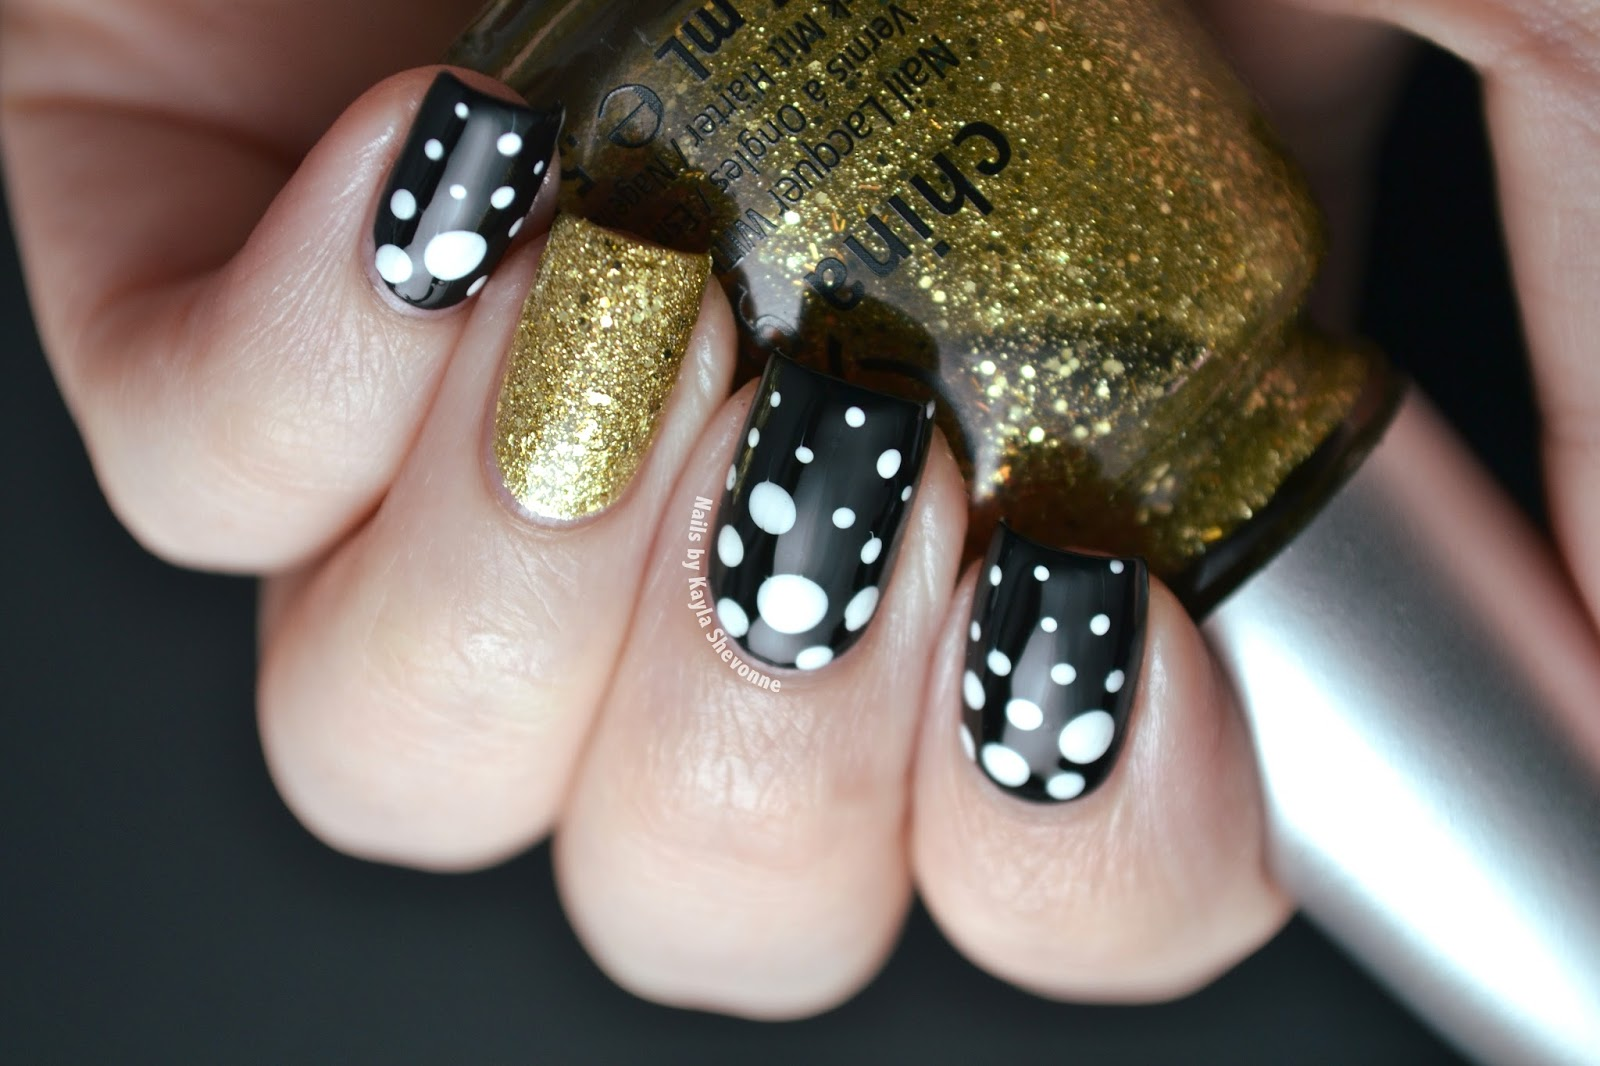 Nails by Kayla Shevonne: New Year\'s Eve Nails - Better Late Than Never!